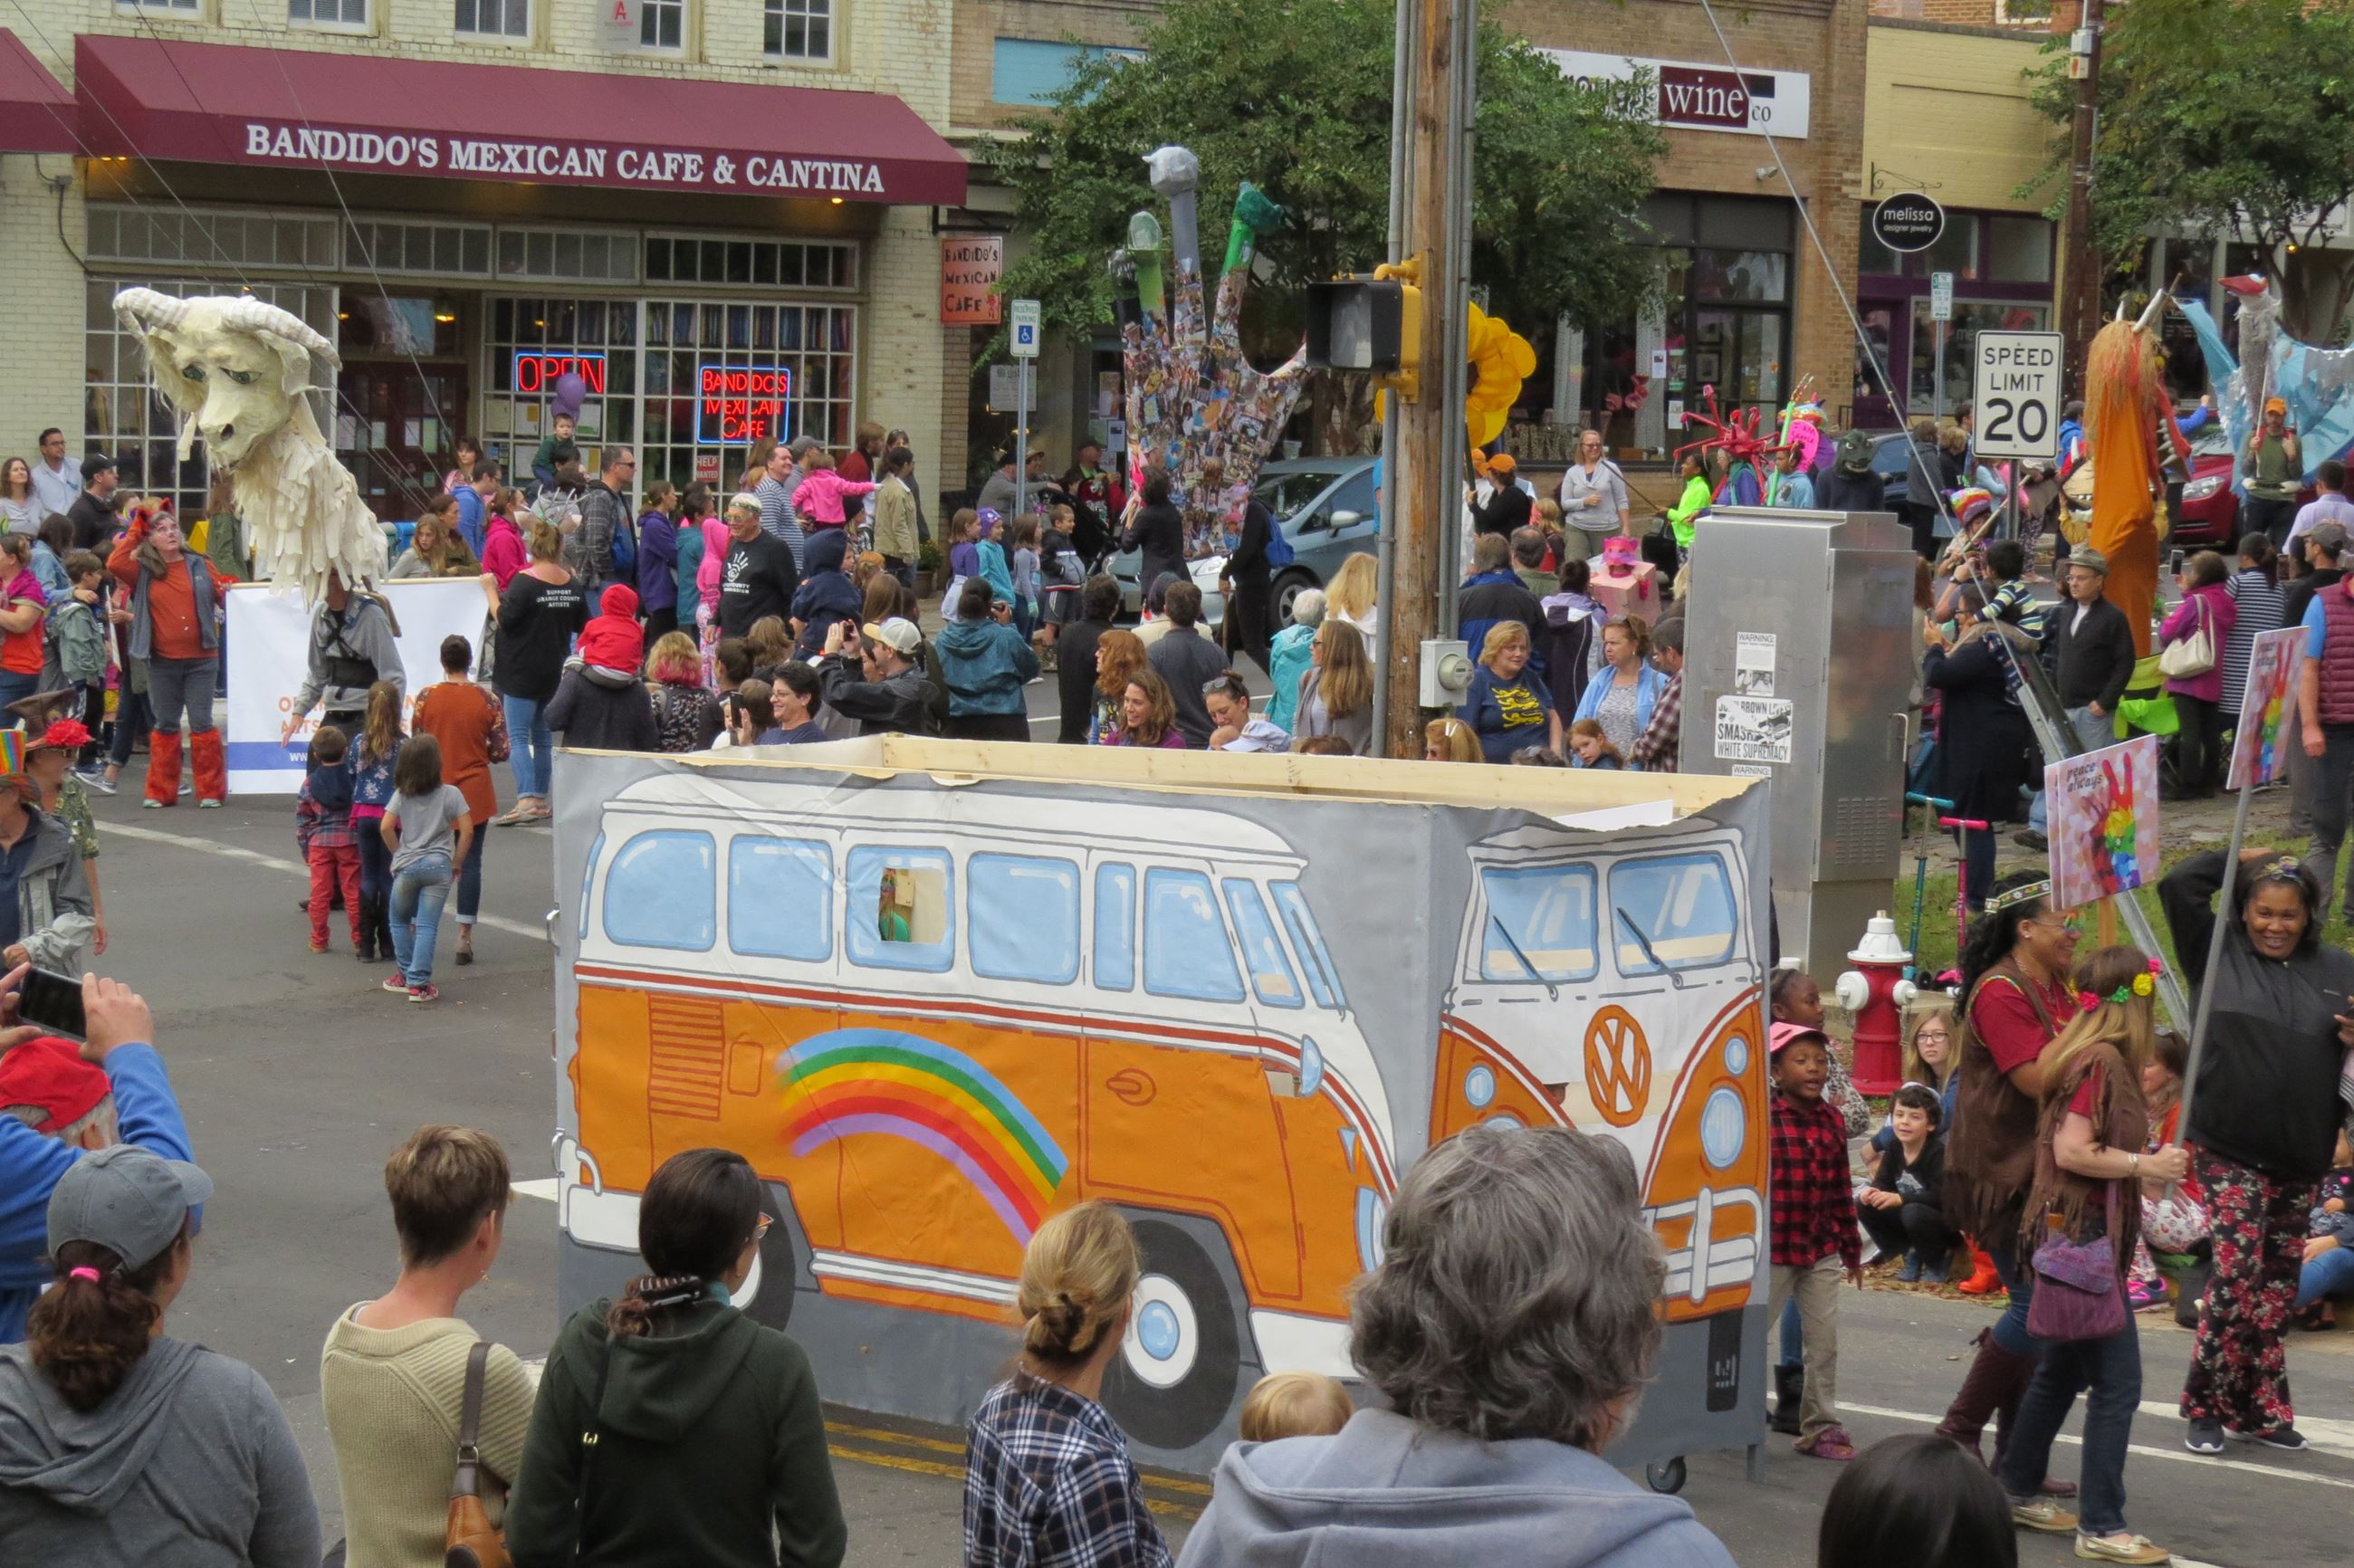 Bus in parade two